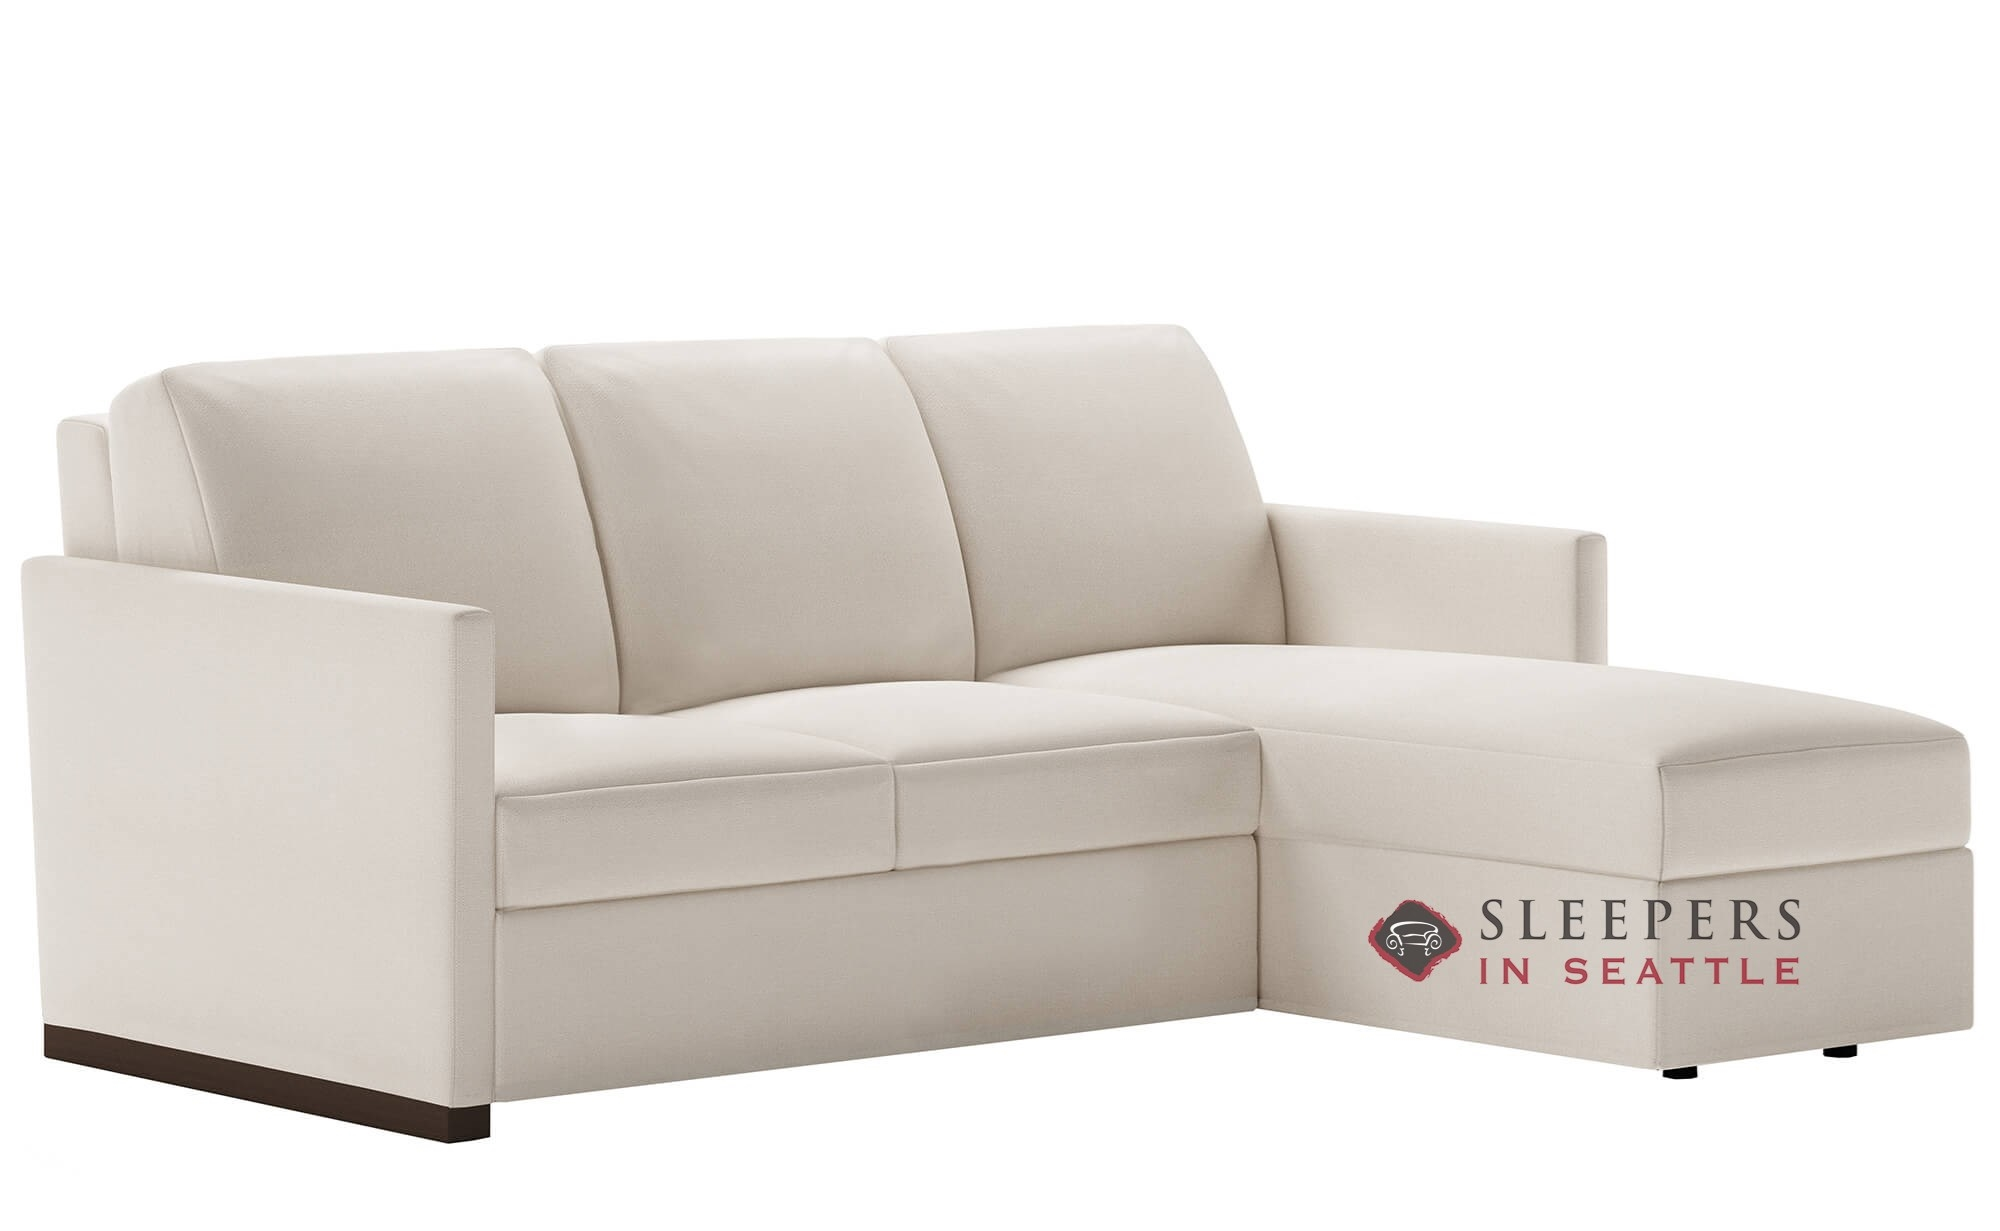 American Leather Pearson Low Leg Queen Plus with Chaise Sectional Comfort  Sleeper (Generation VIII)